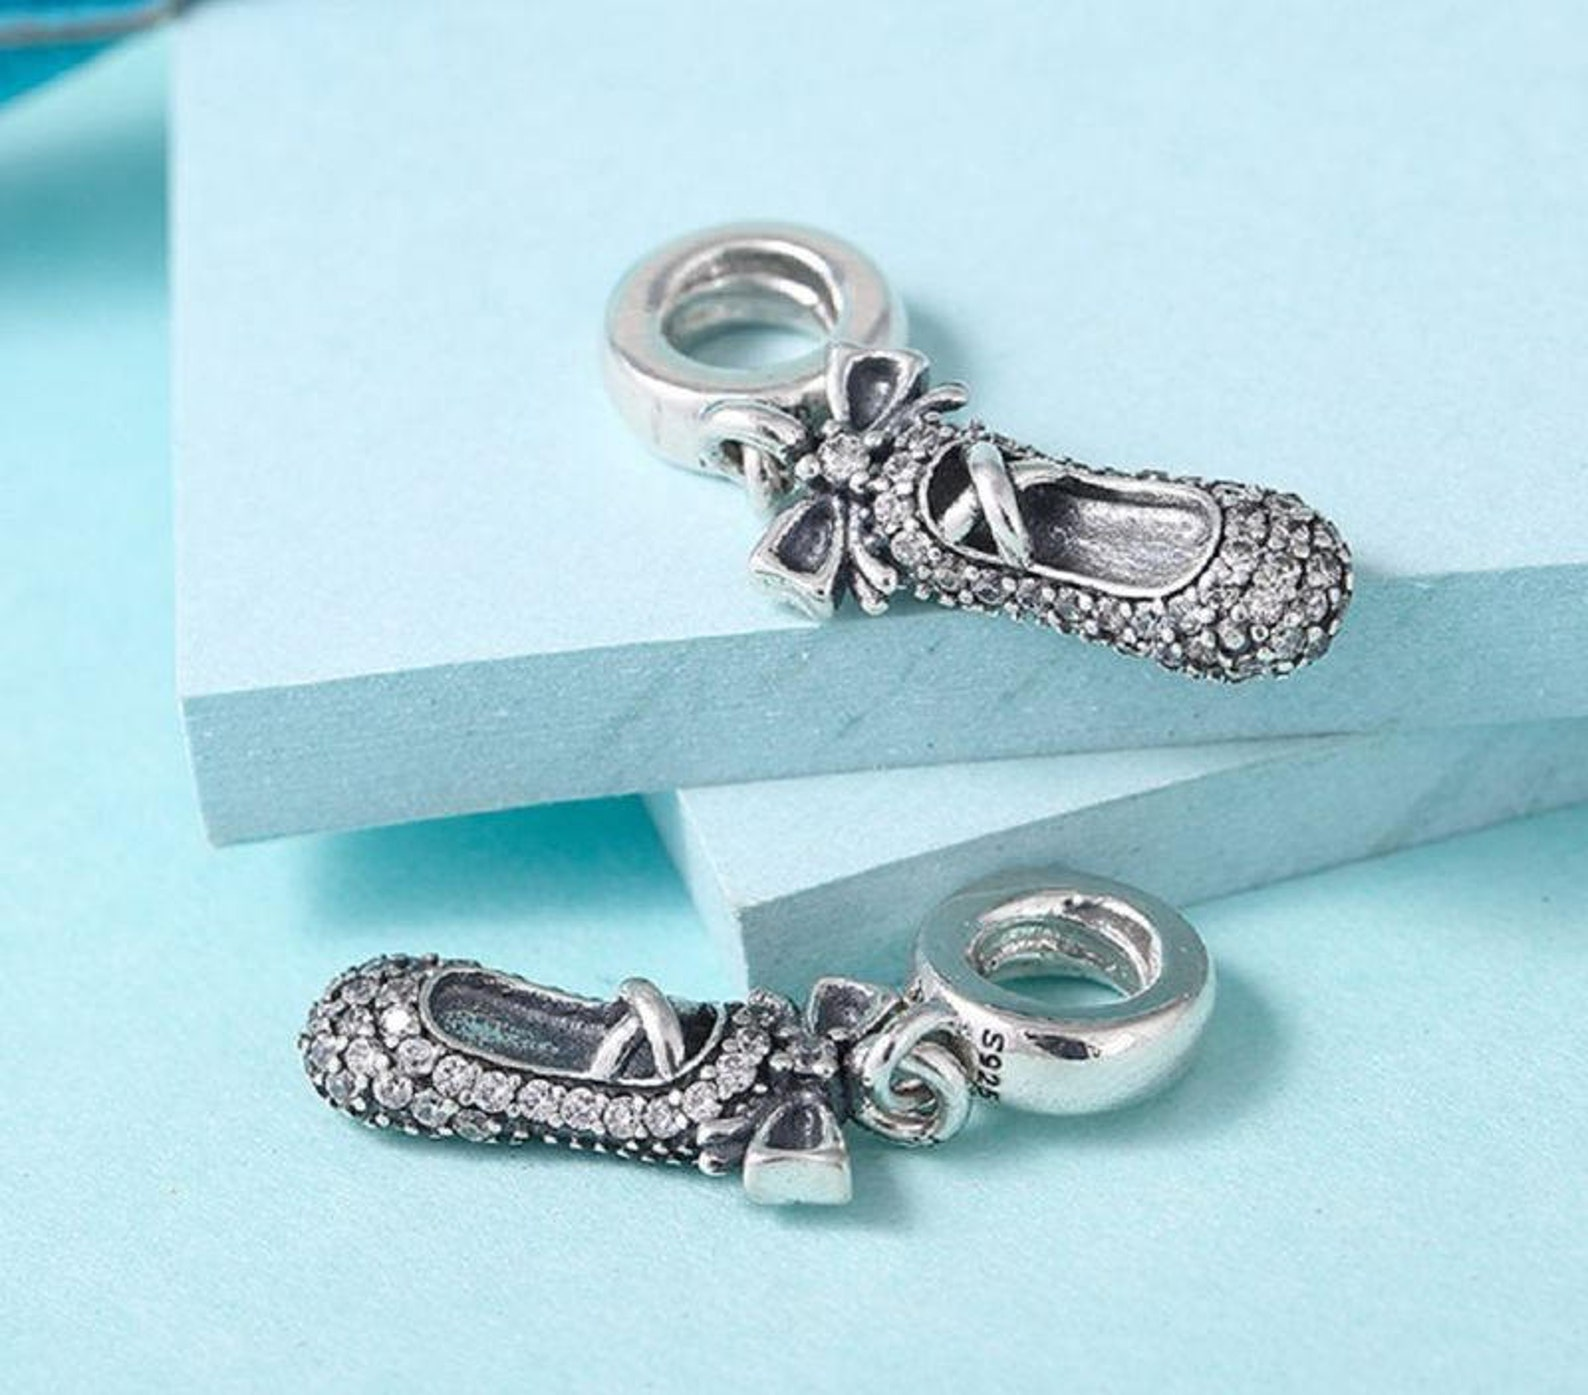 ballet slipper pendant charm, 925 sterling silver & cubic zirconia charm fits to all pandora bracelets